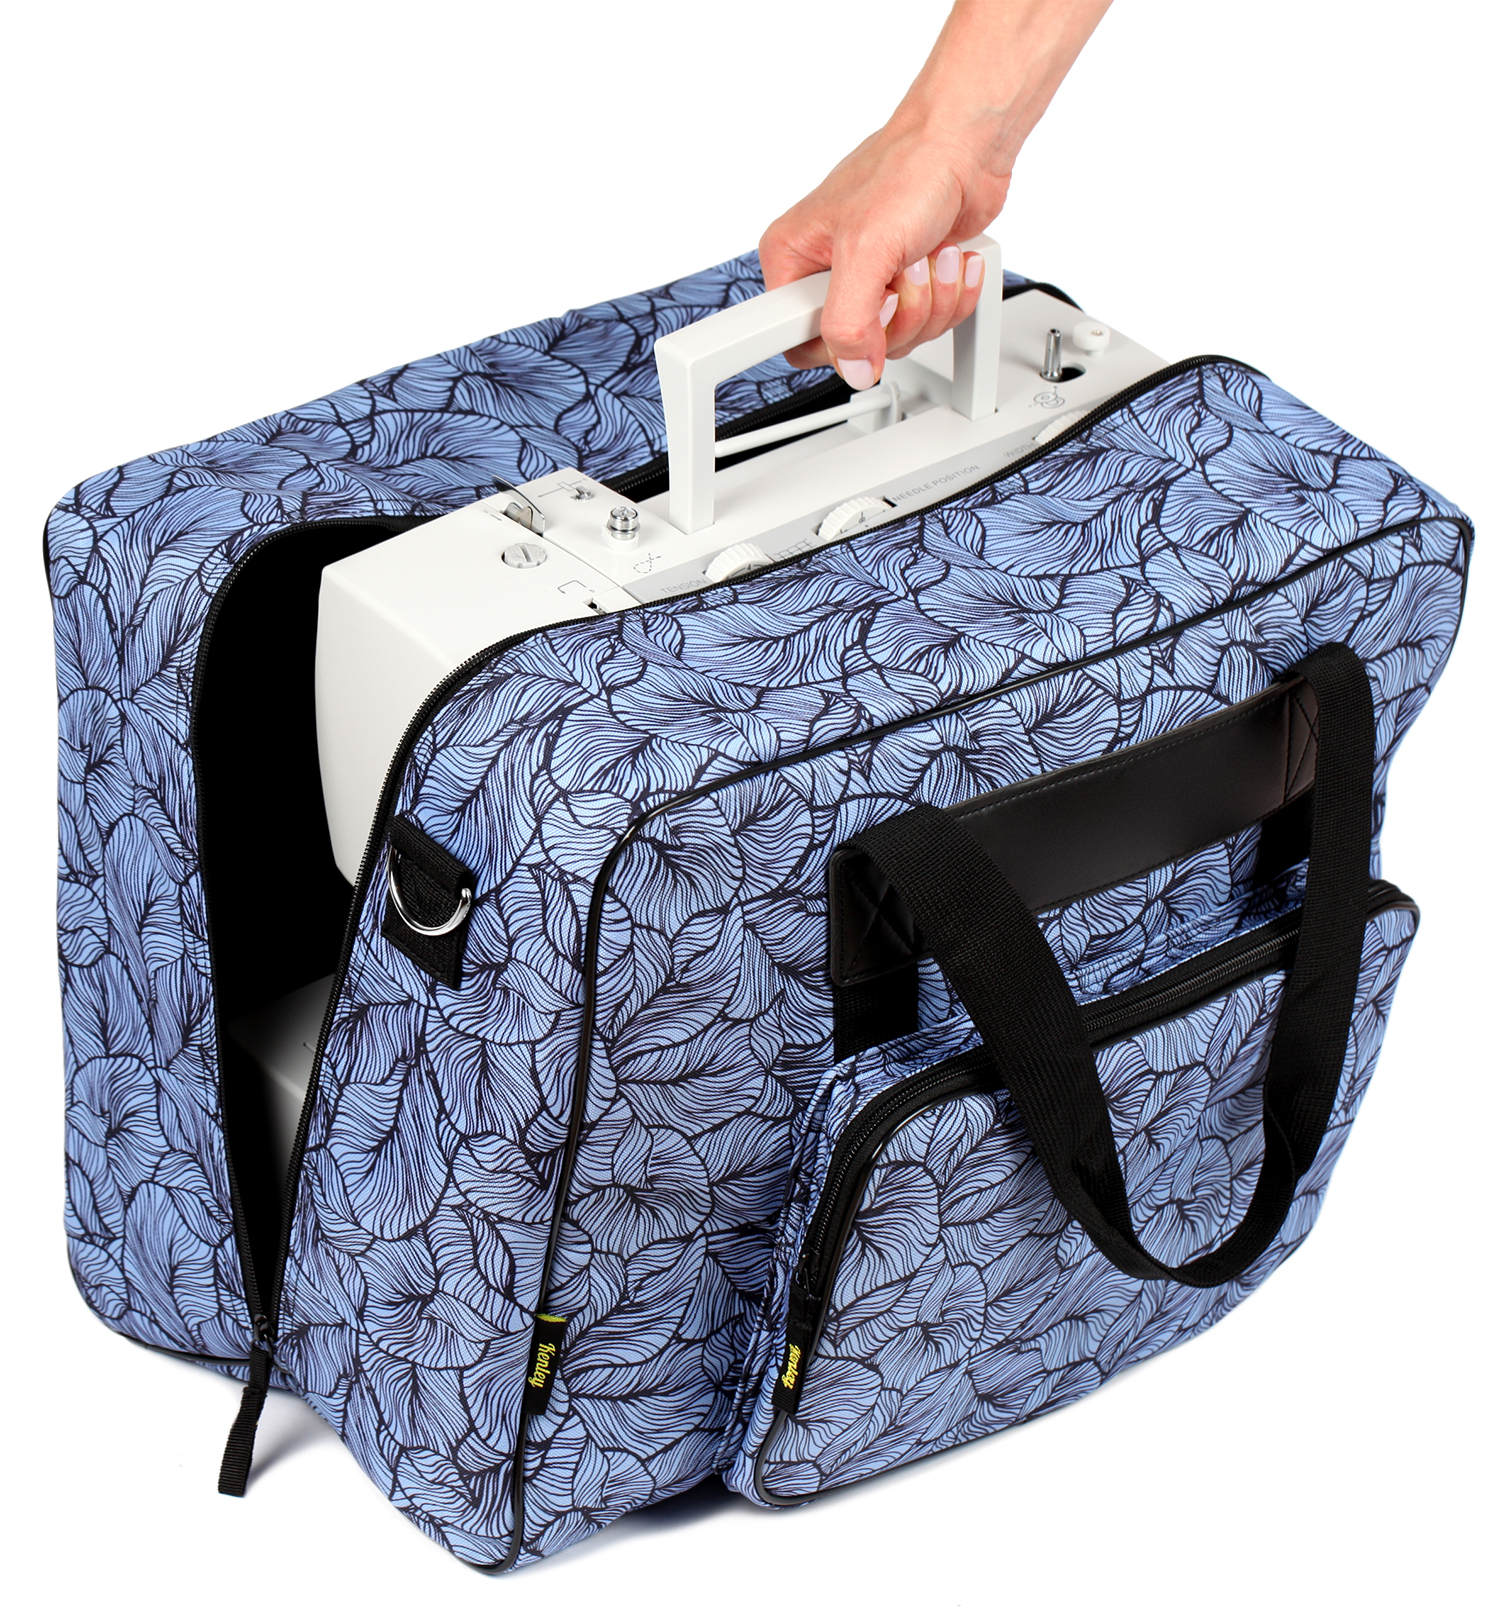 Kenley padded sewing machine bag storage cover carry case